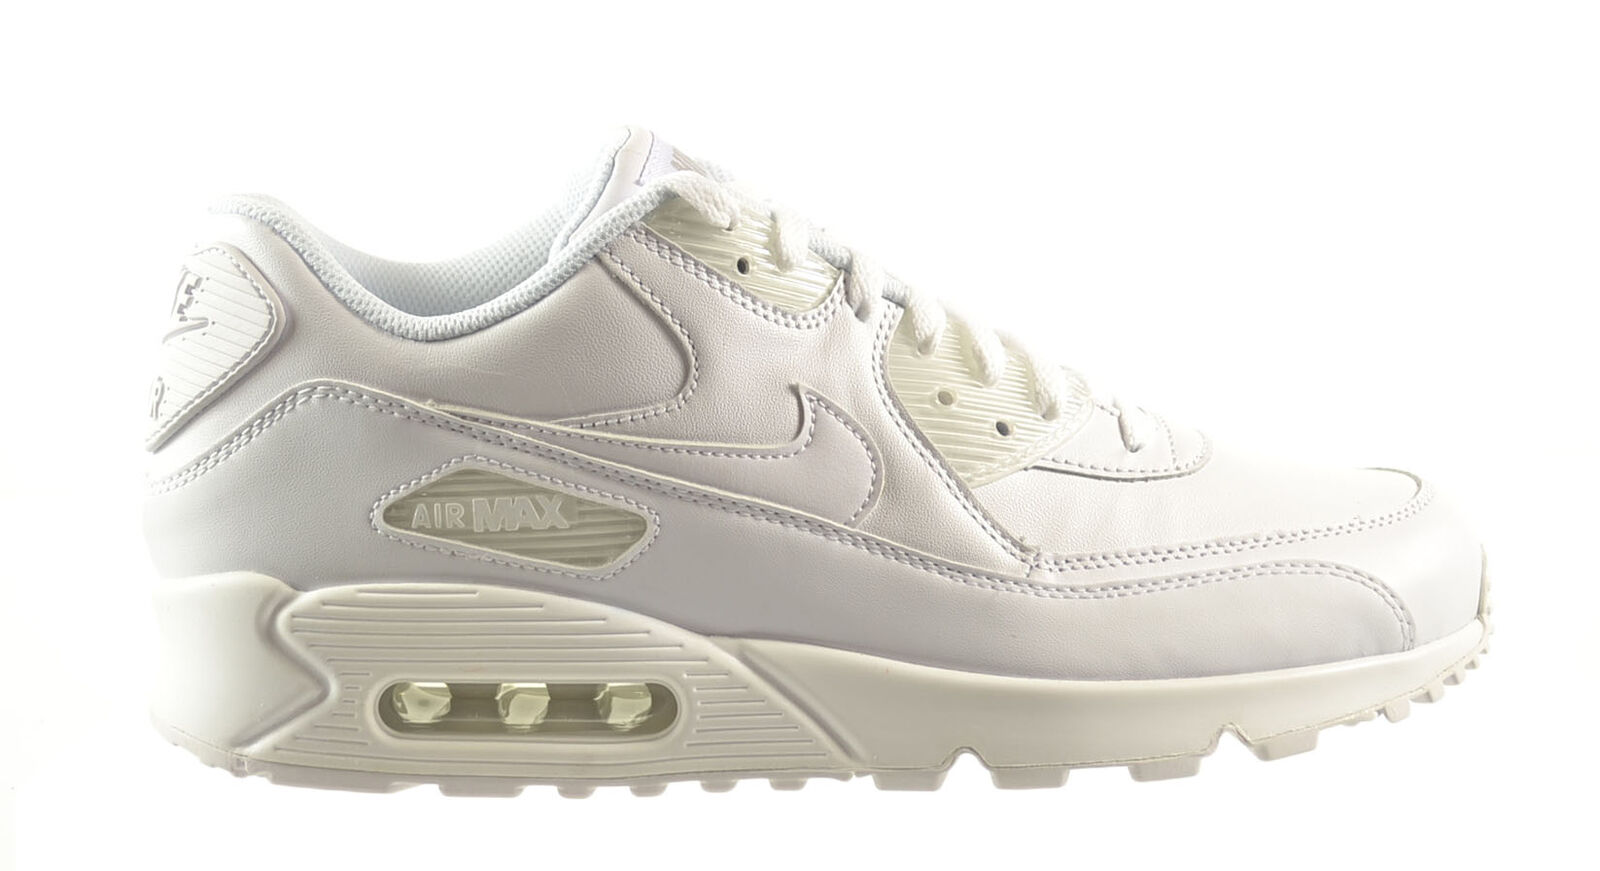 Nike Air Max  90 Leather Men's scarpe bianca  bianca 302519 -113  outlet online